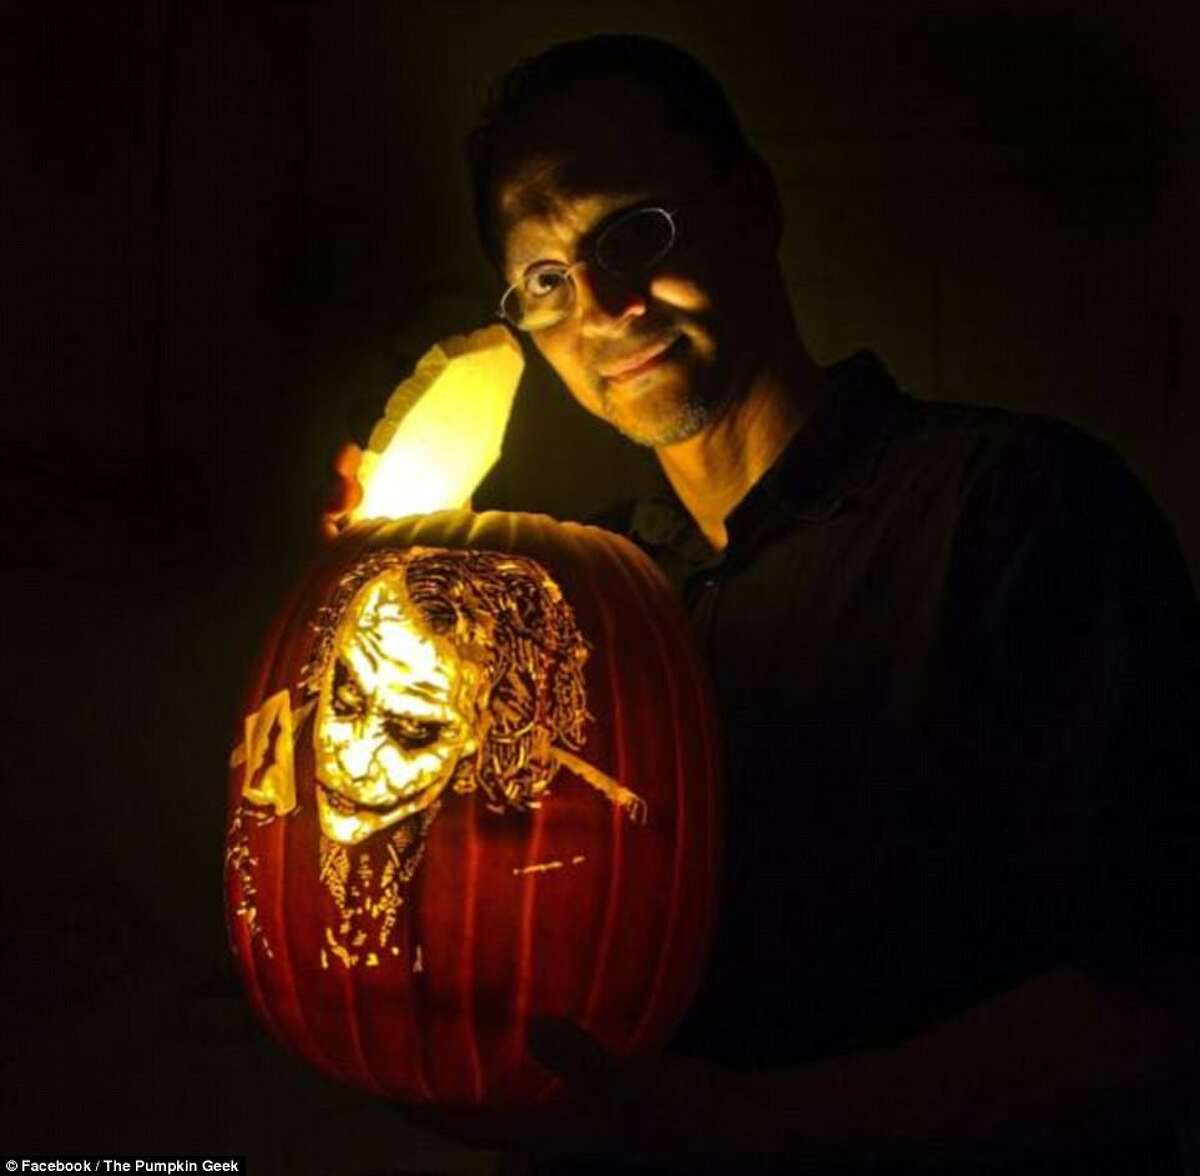 Sacramento artist Alex Wer quit his day job as a mortgage broker to carve artificial pumpkins full-time. His creations range from celebrities to Star Wars battle scenes.